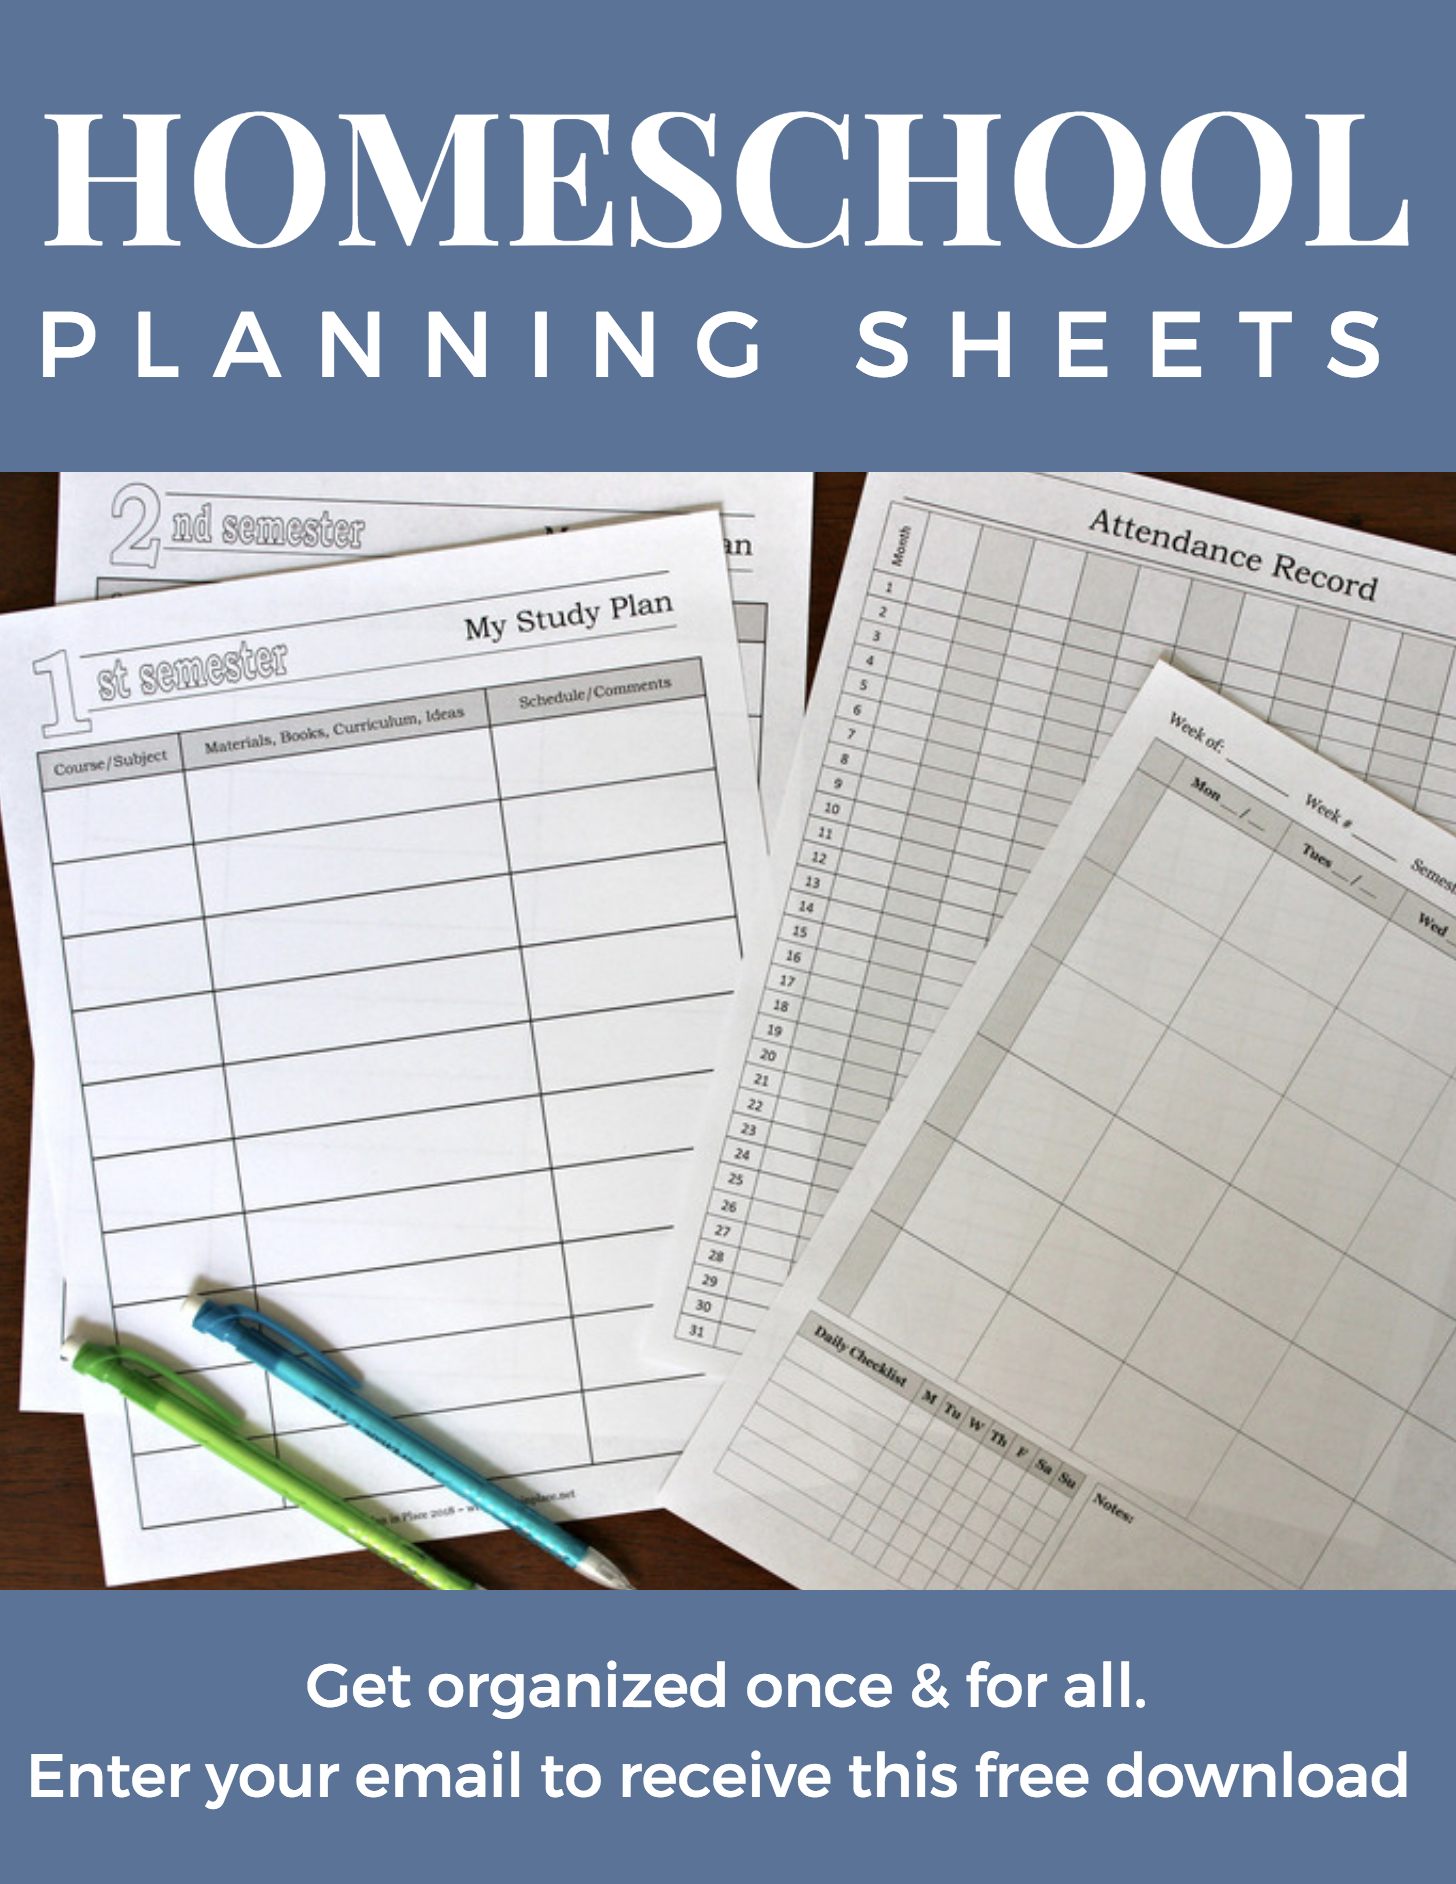 photograph about Free Printable Homeschool Record Keeping Forms known as Tailored Printable Homeschool Planner - A Program inside Location